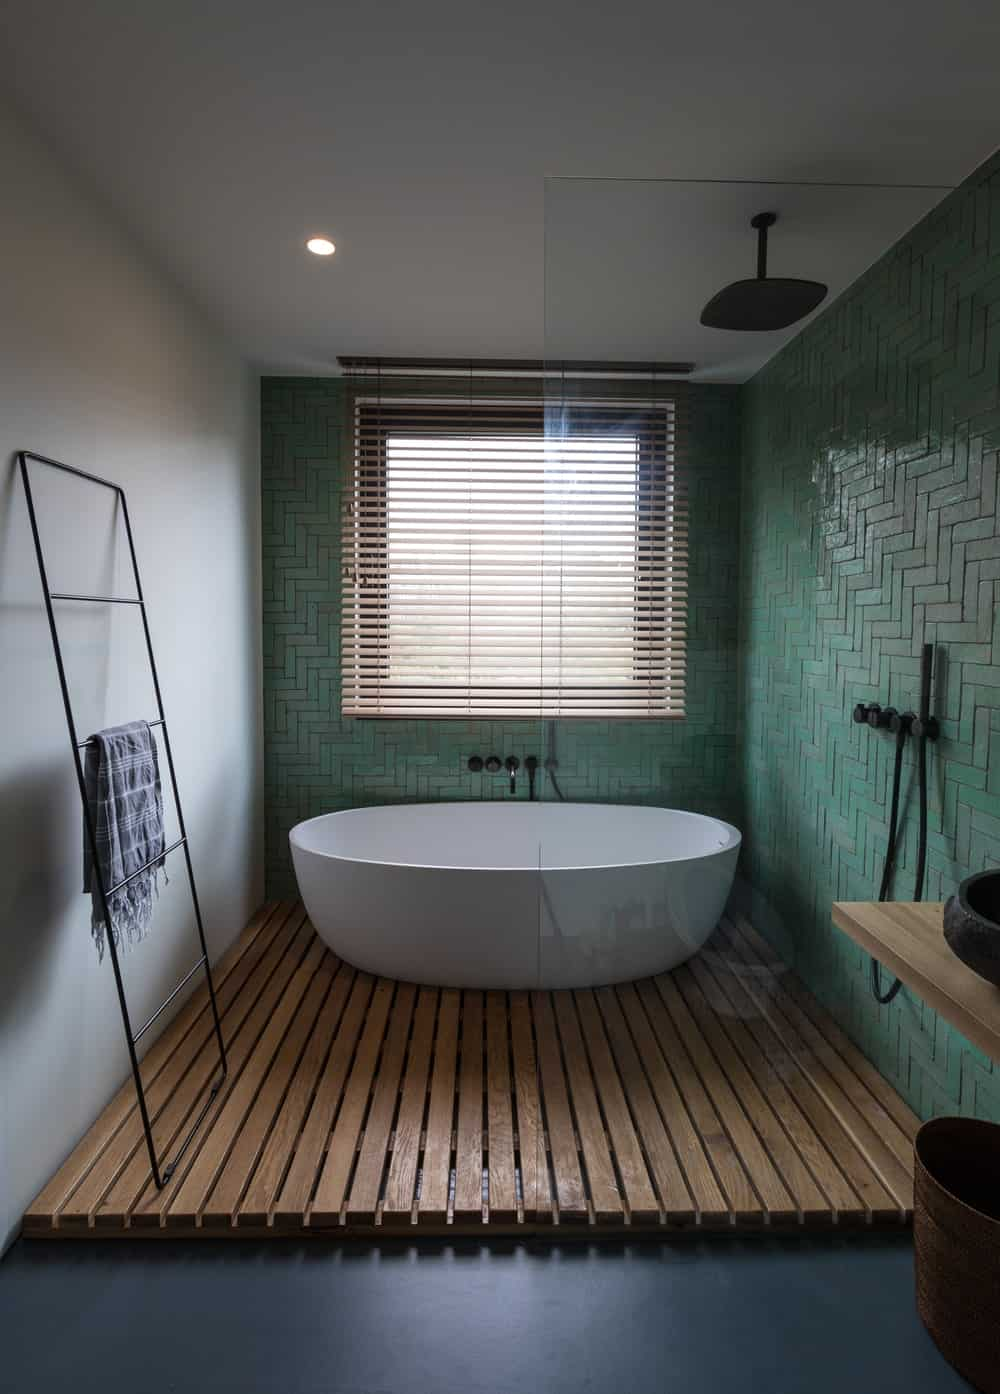 Bathroom in the Frans Halsstraat designed by Cantero Architecture.